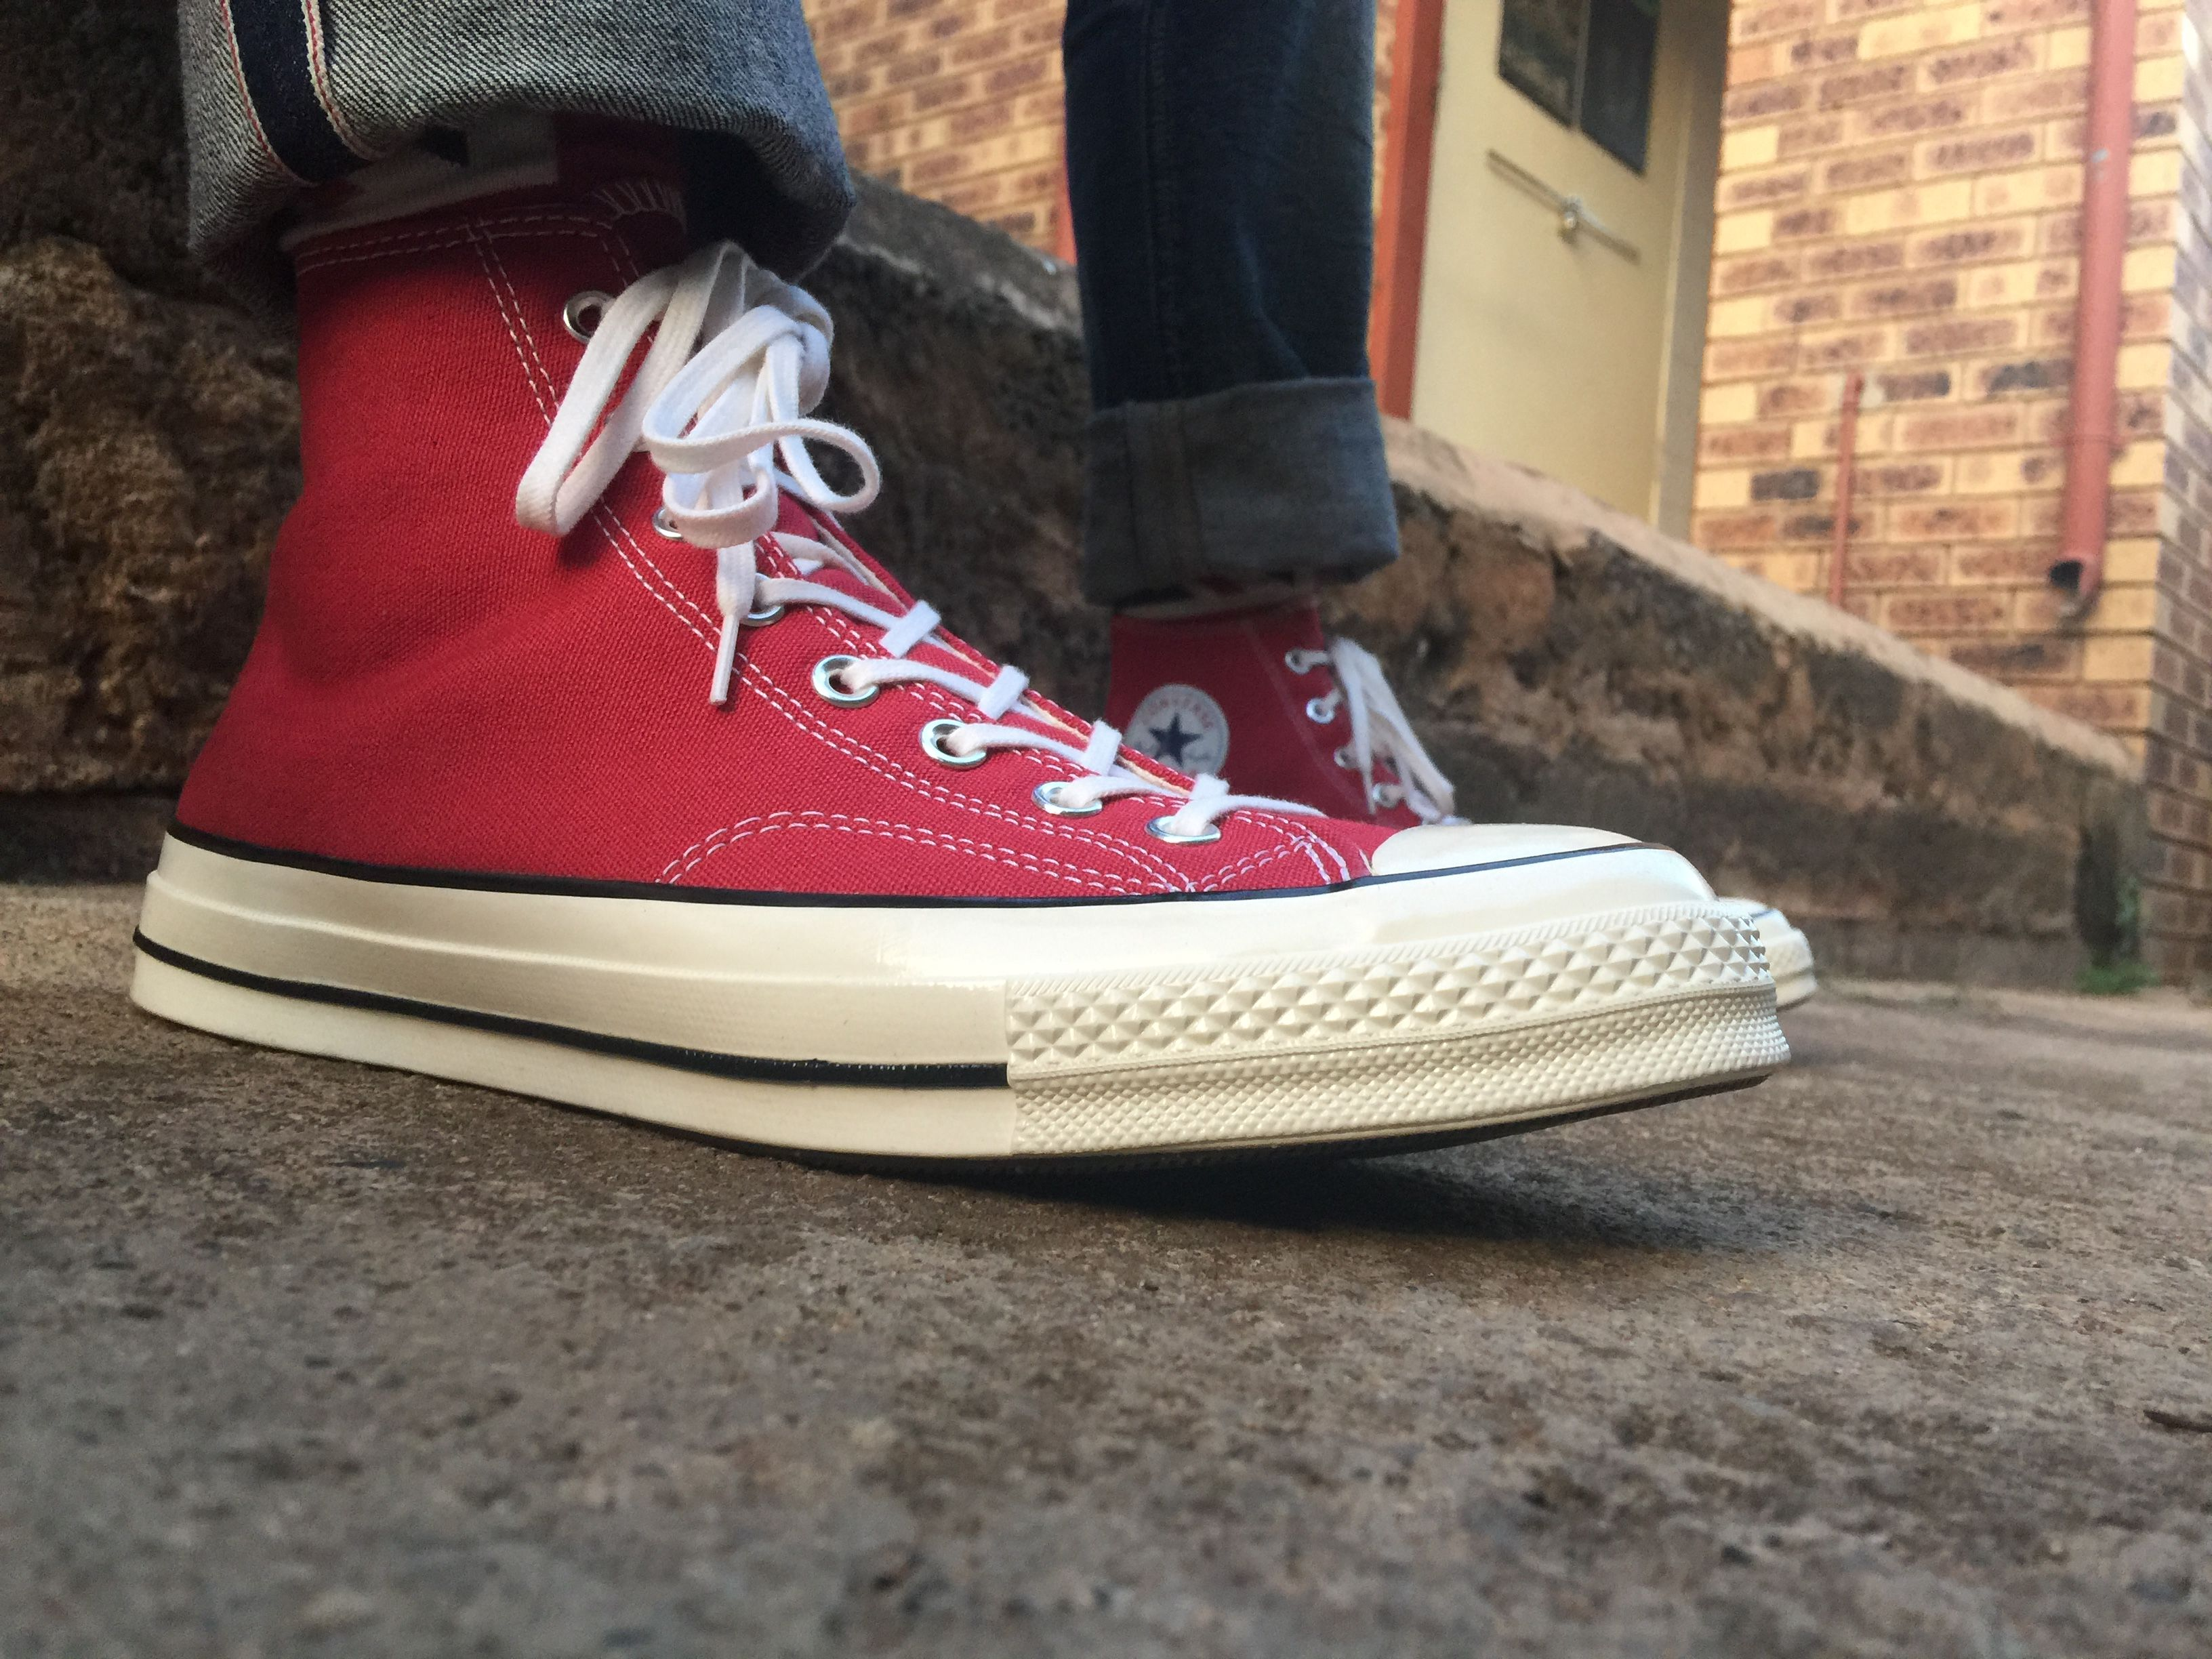 64299bdd1b22 70 s inspired converse allstars and selvedge jeans